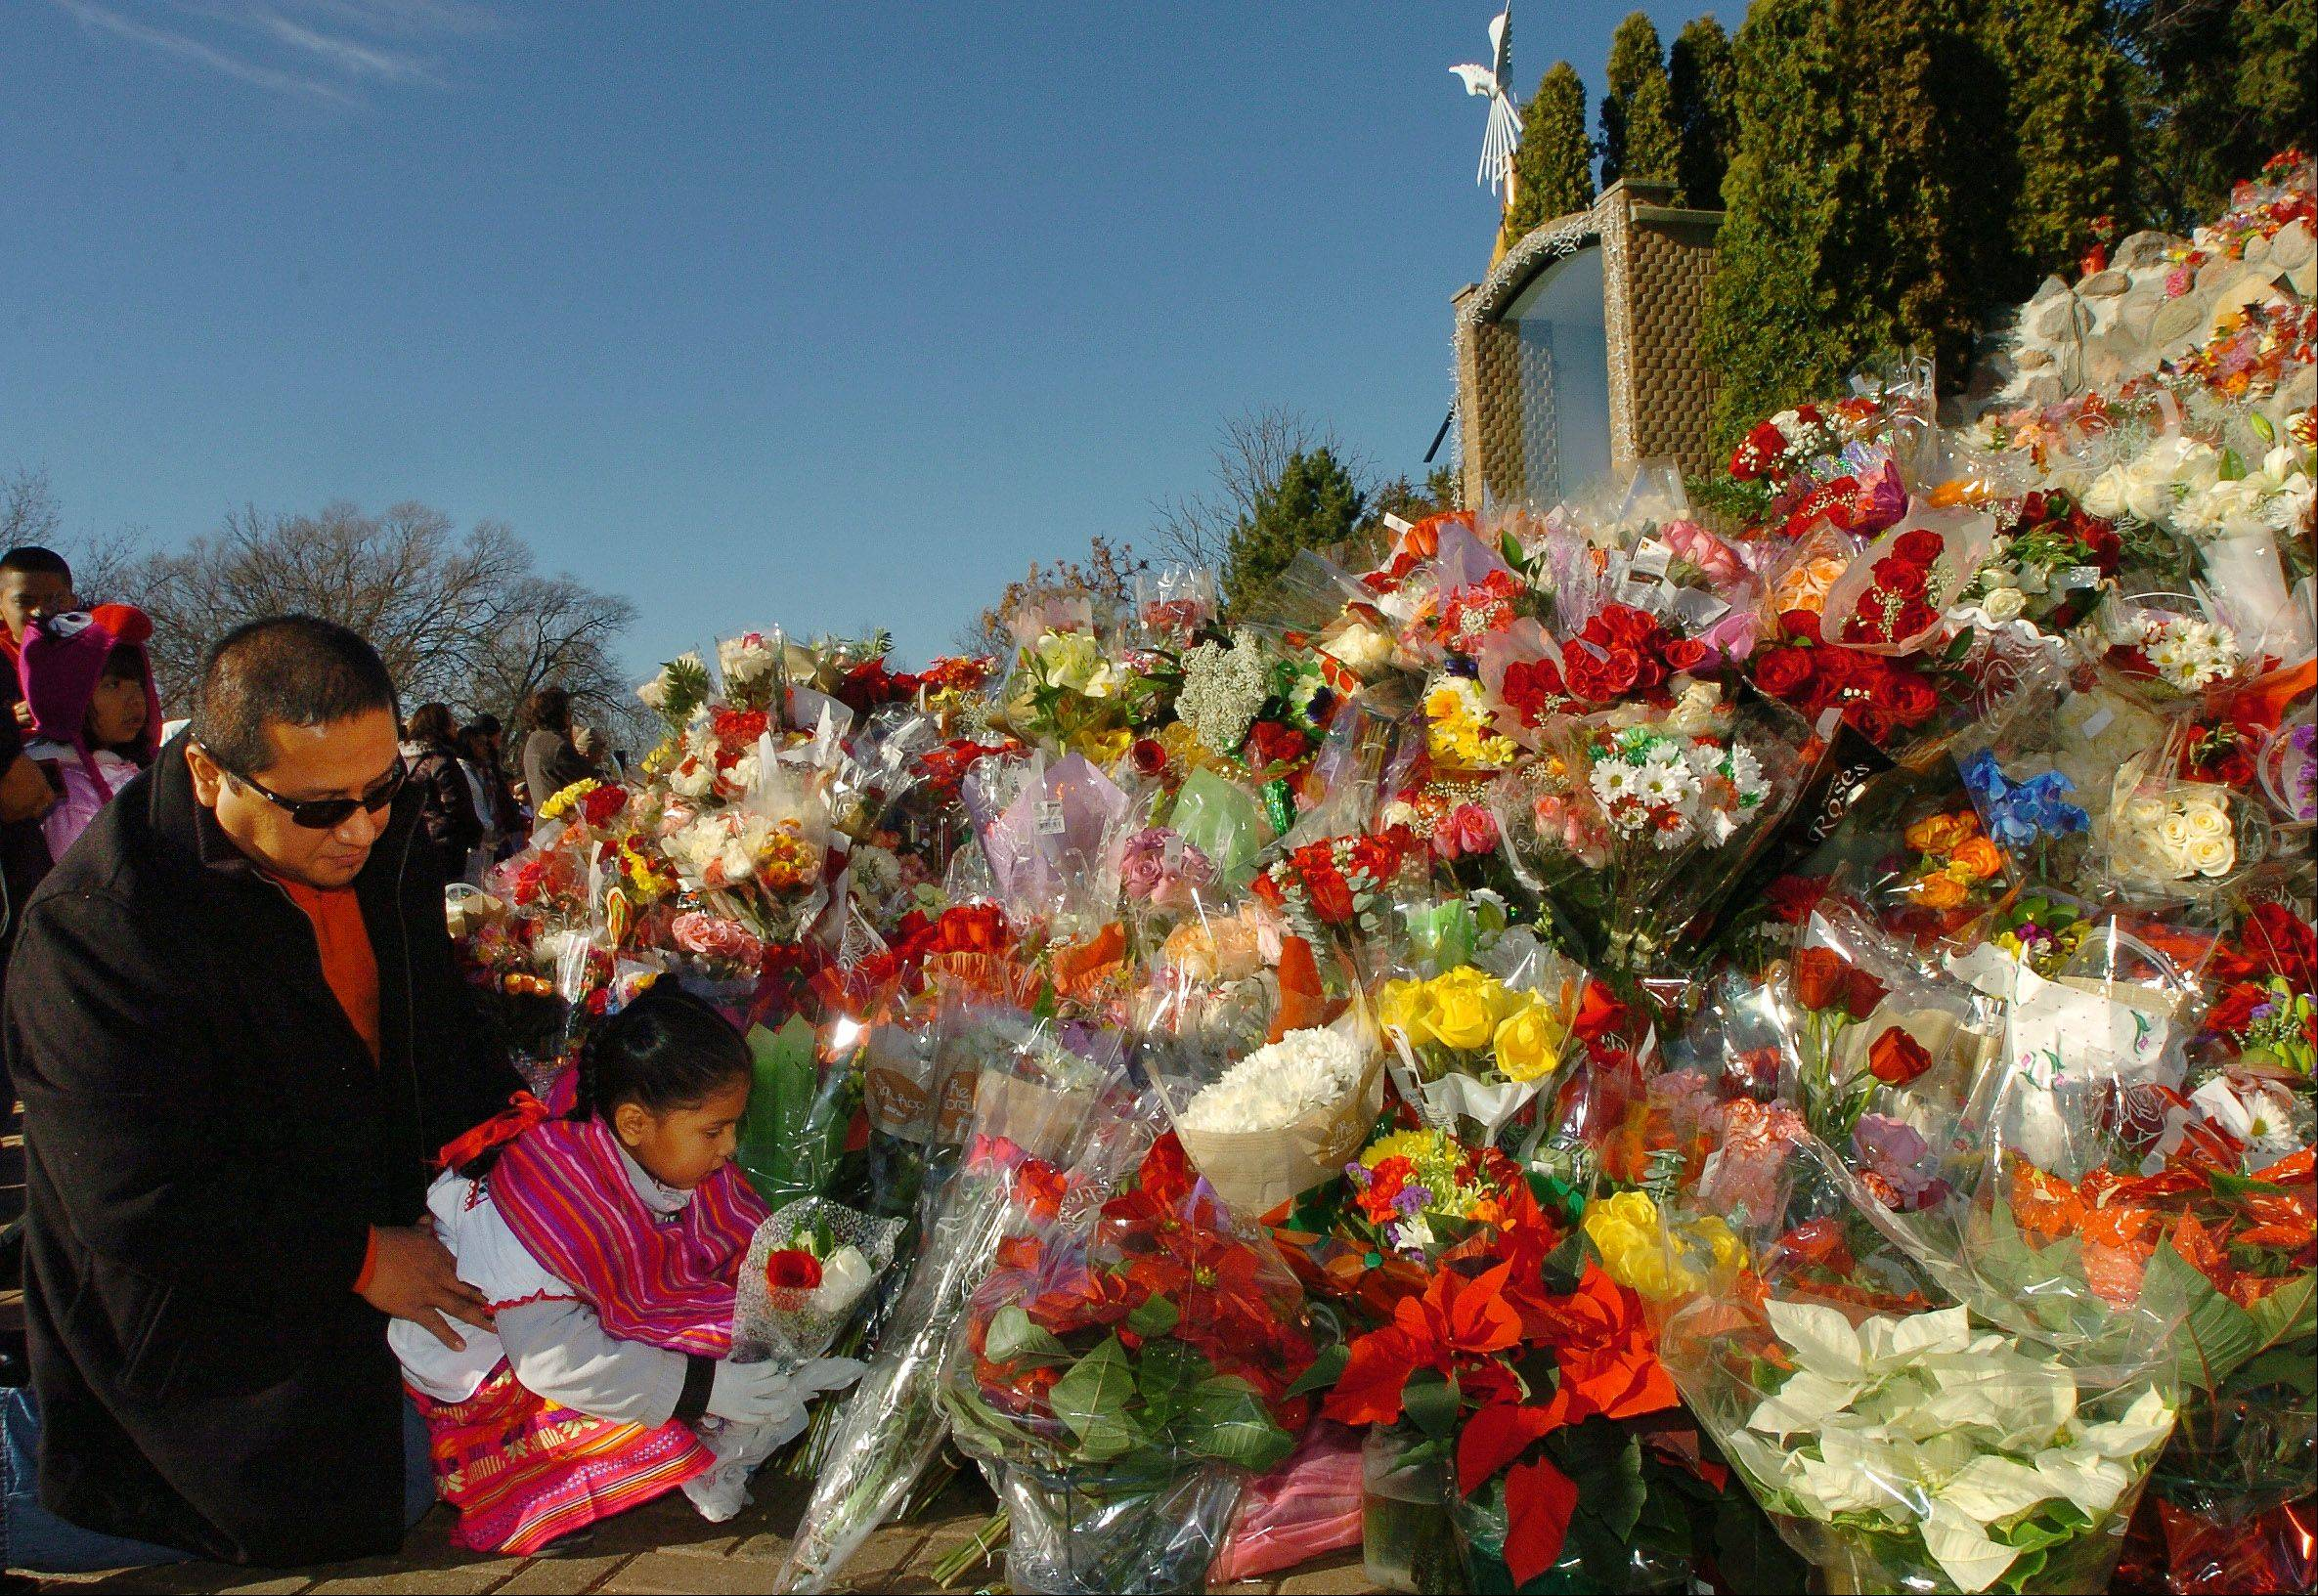 Carlos Garcia of Chicago and his daughter Ashley place roses at the Our Lady of Guadalupe shrine in Des Plaines.